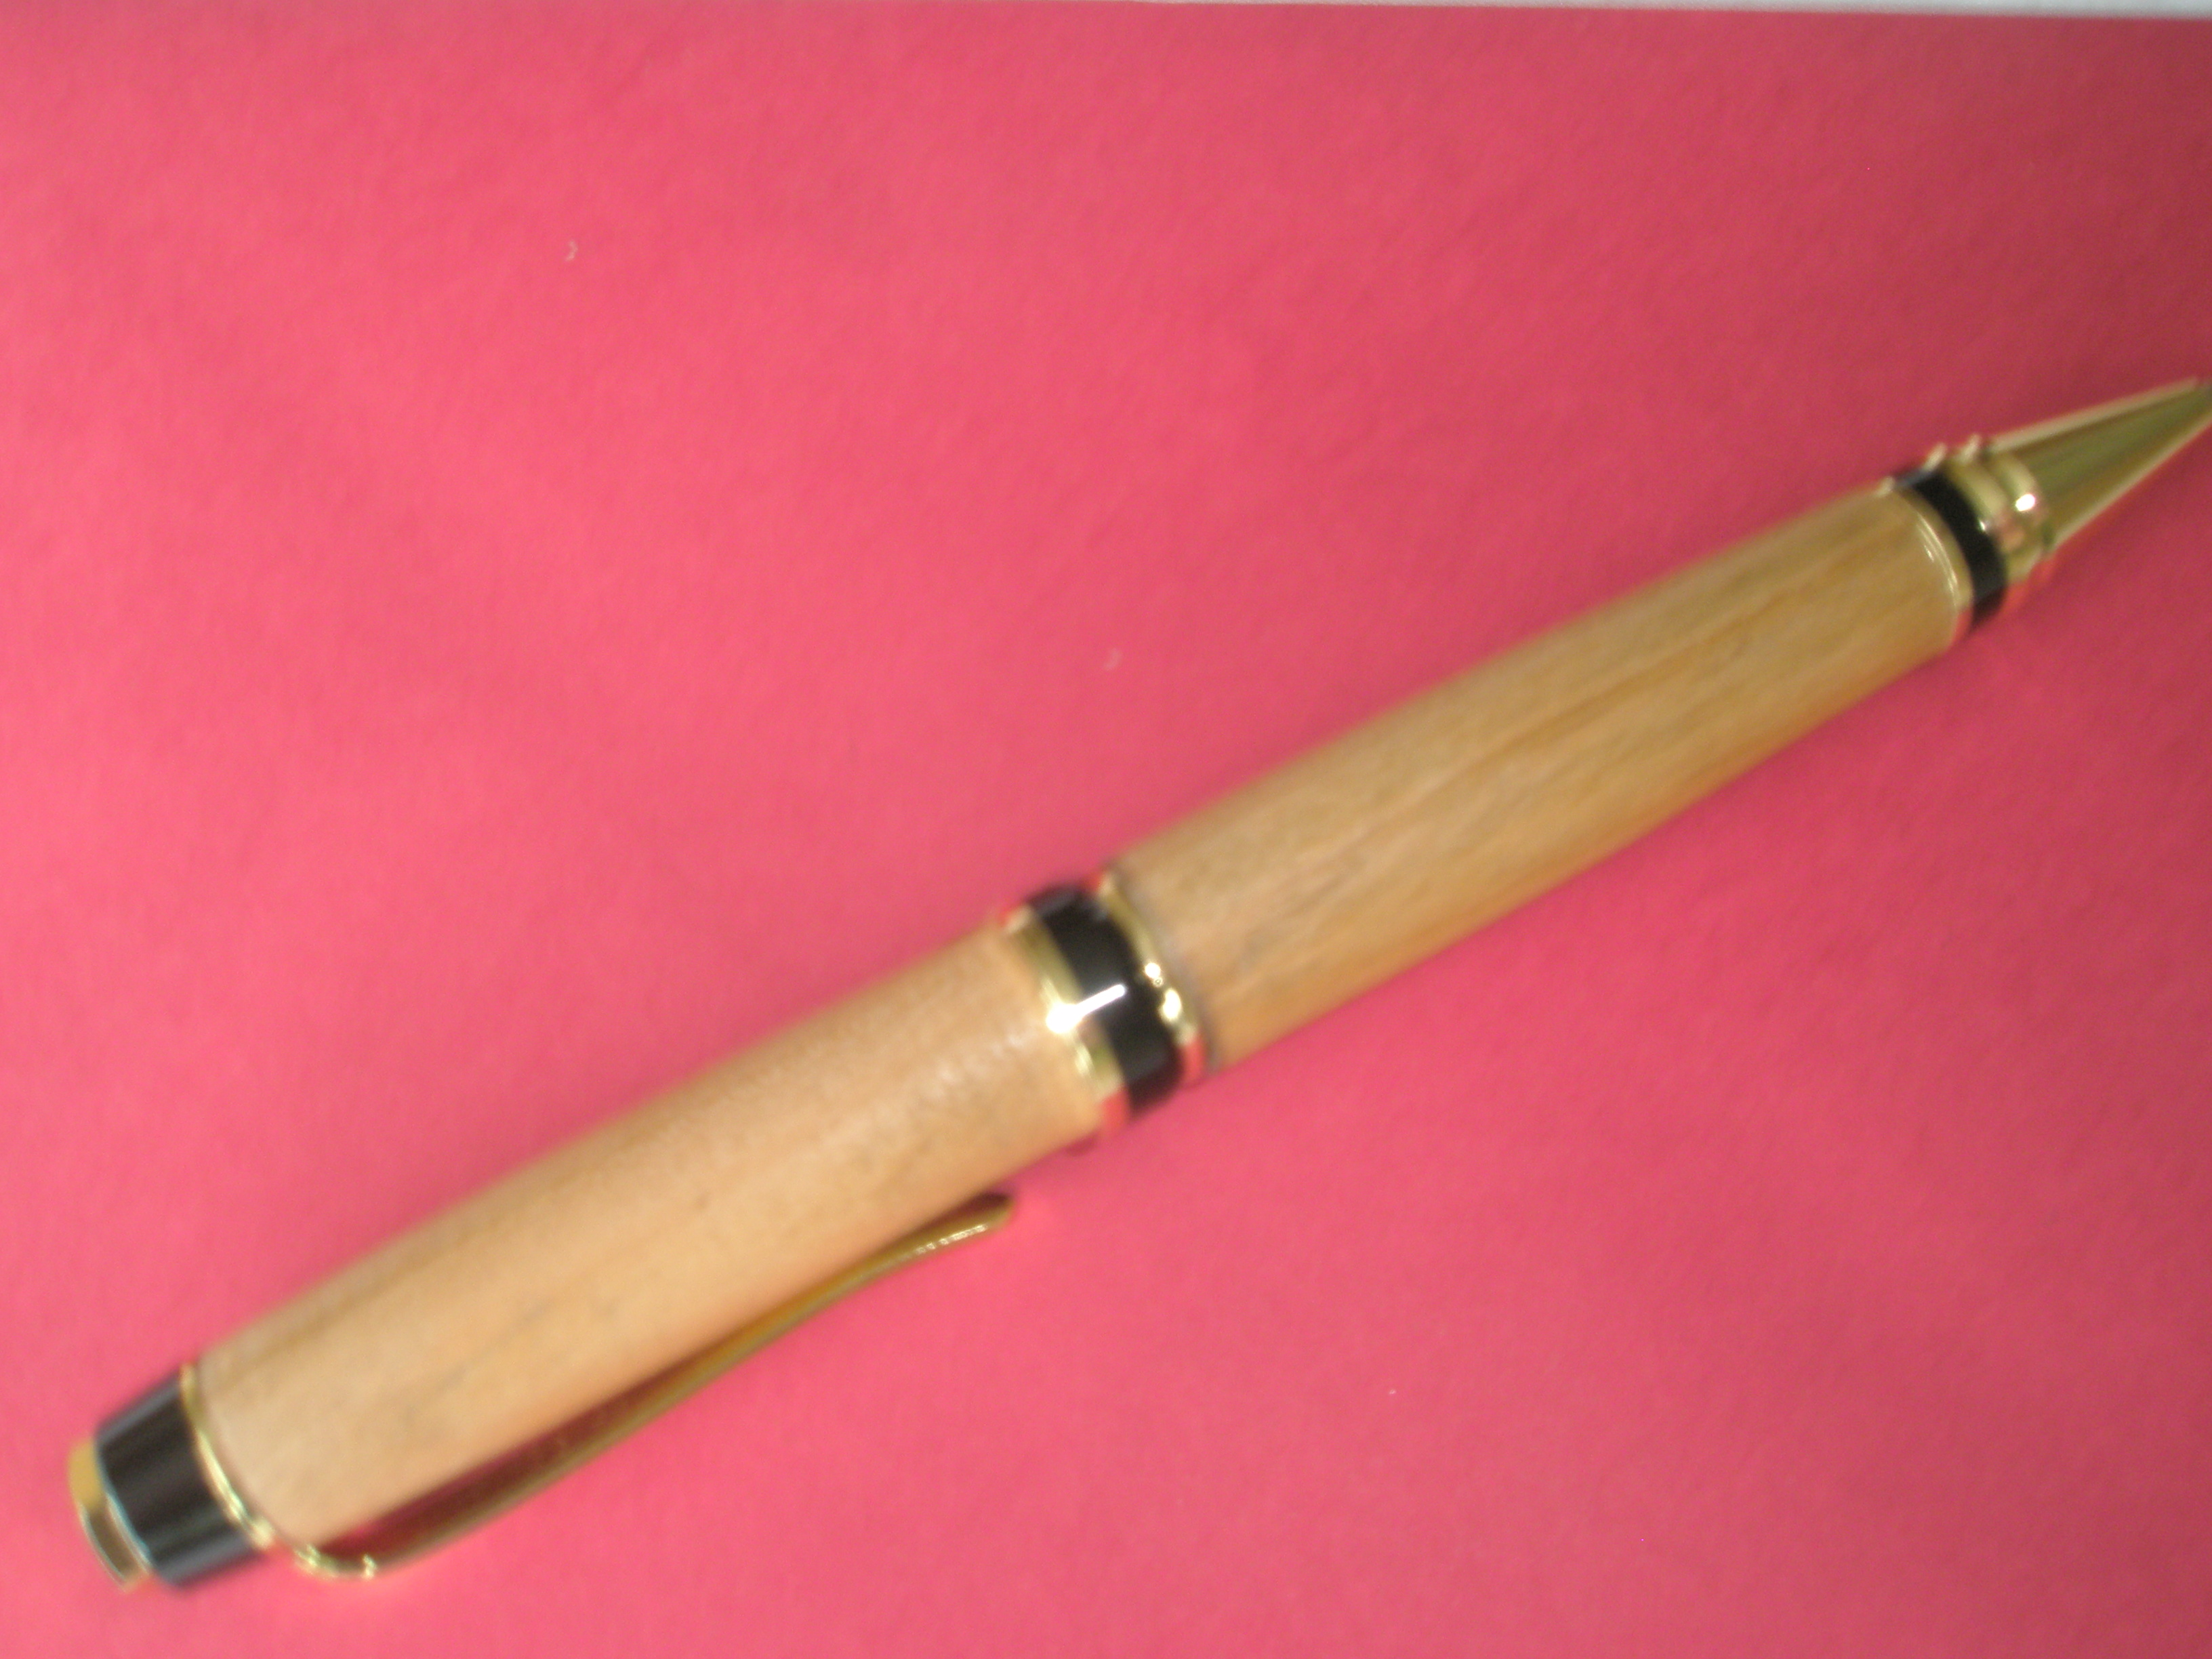 A Cherry wood fat Cigar roller ball pen in 24carat Gold plated trimmings